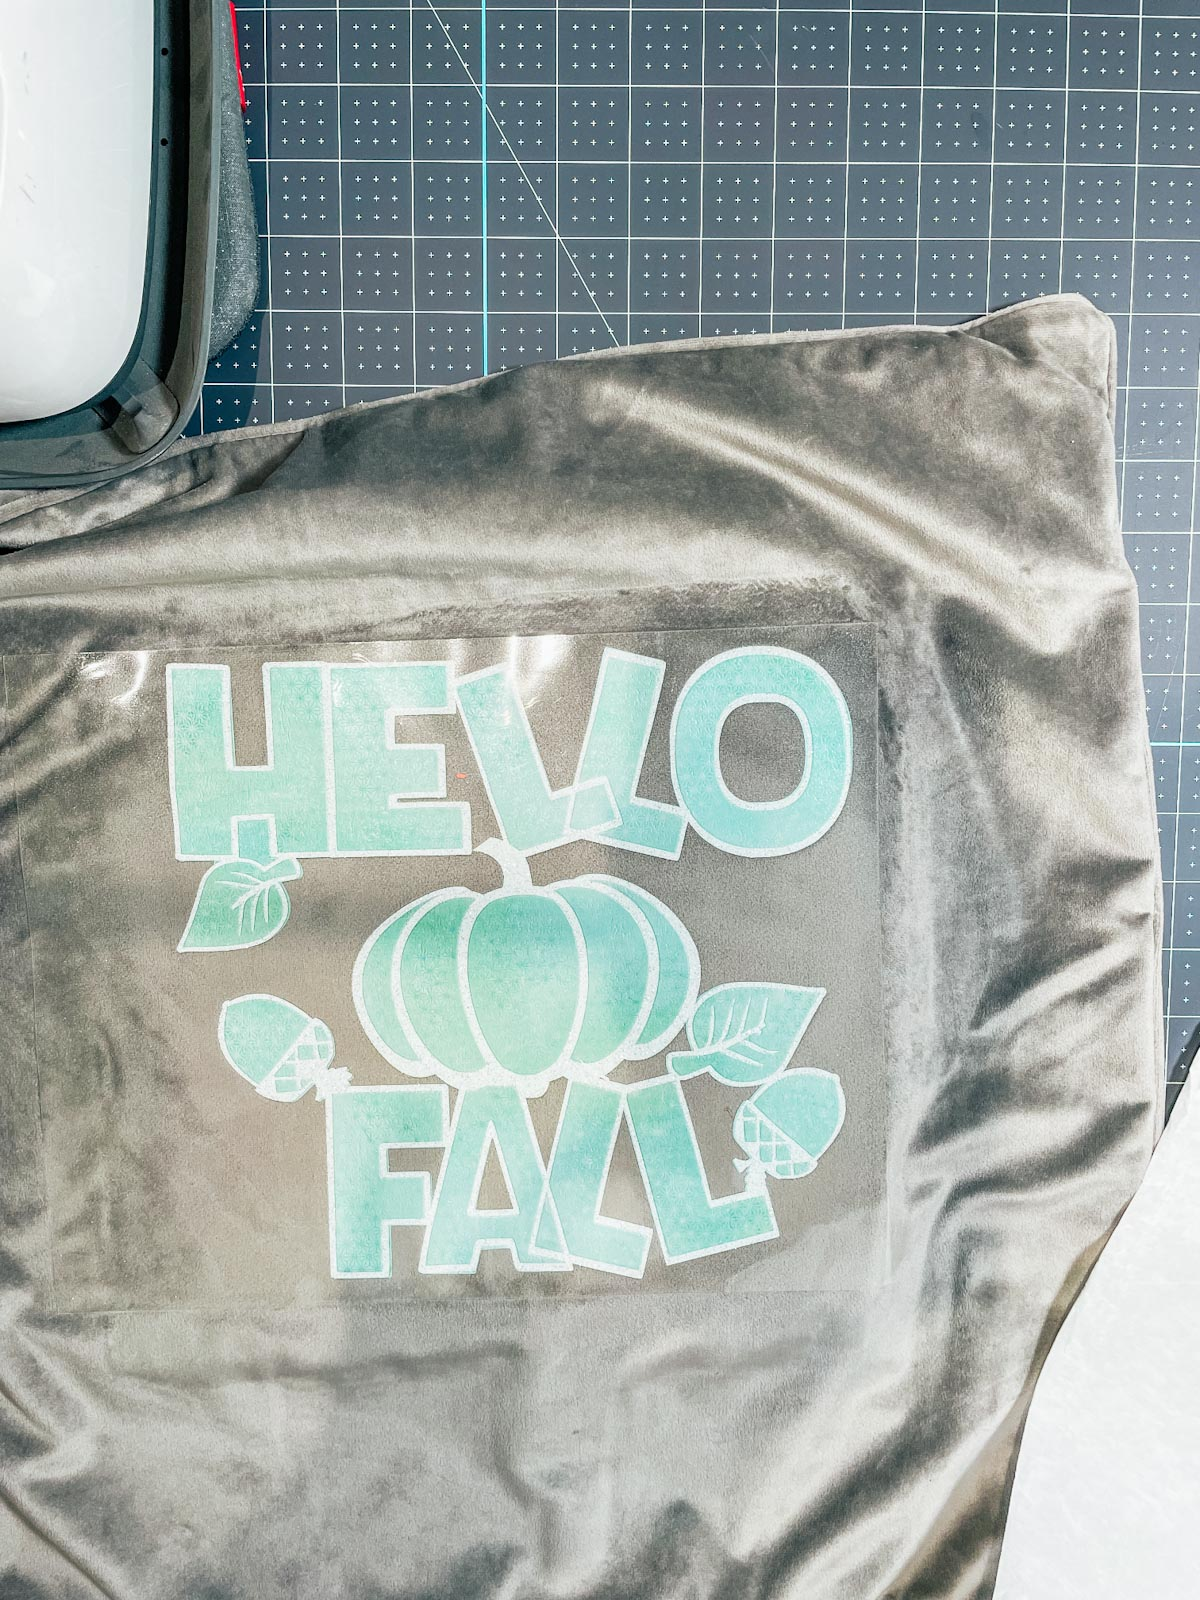 add the first layer, heat press and remove film layer then add the second